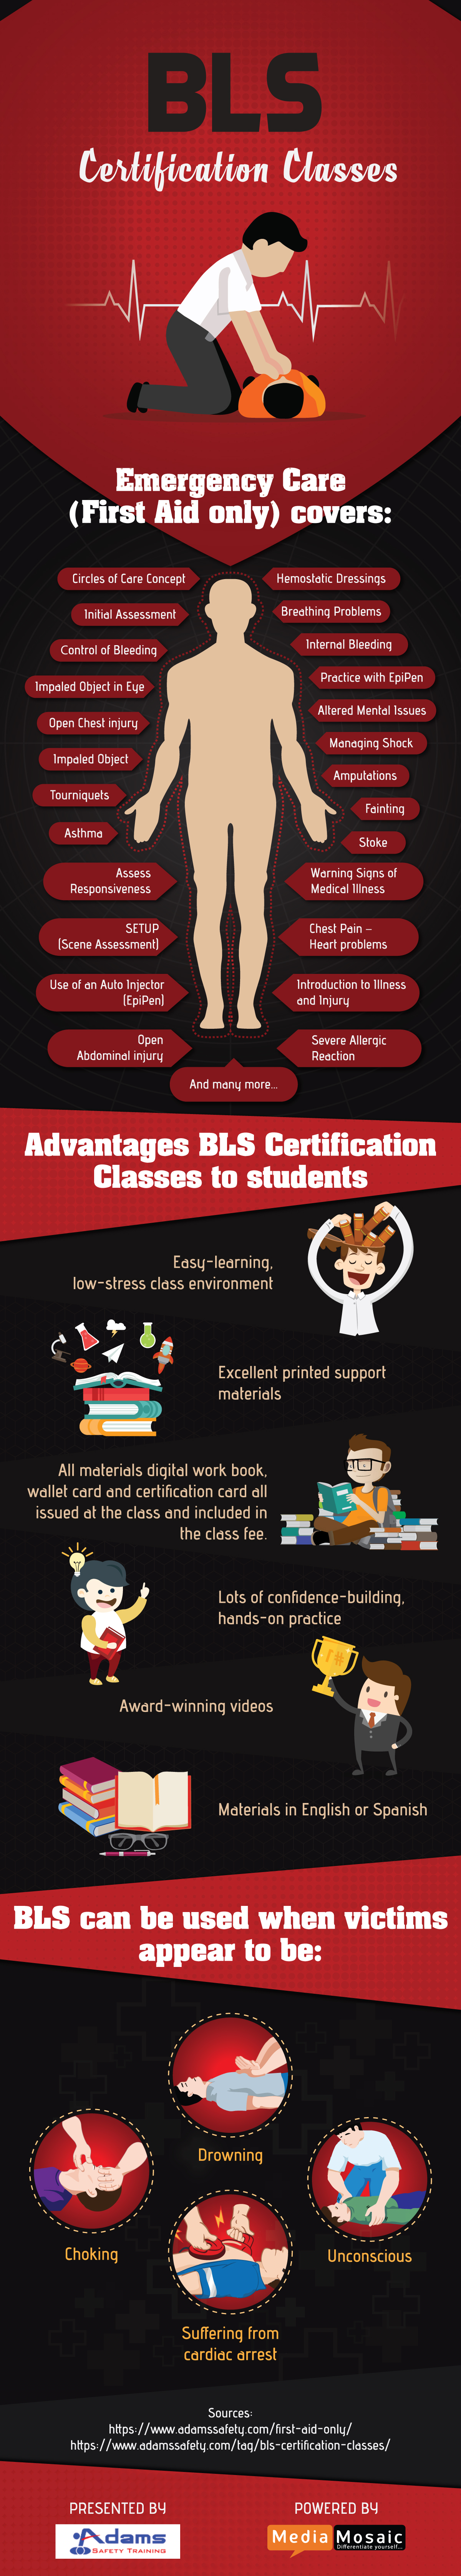 Advantages Of Bls Certification Classes Infographic Adams Safety